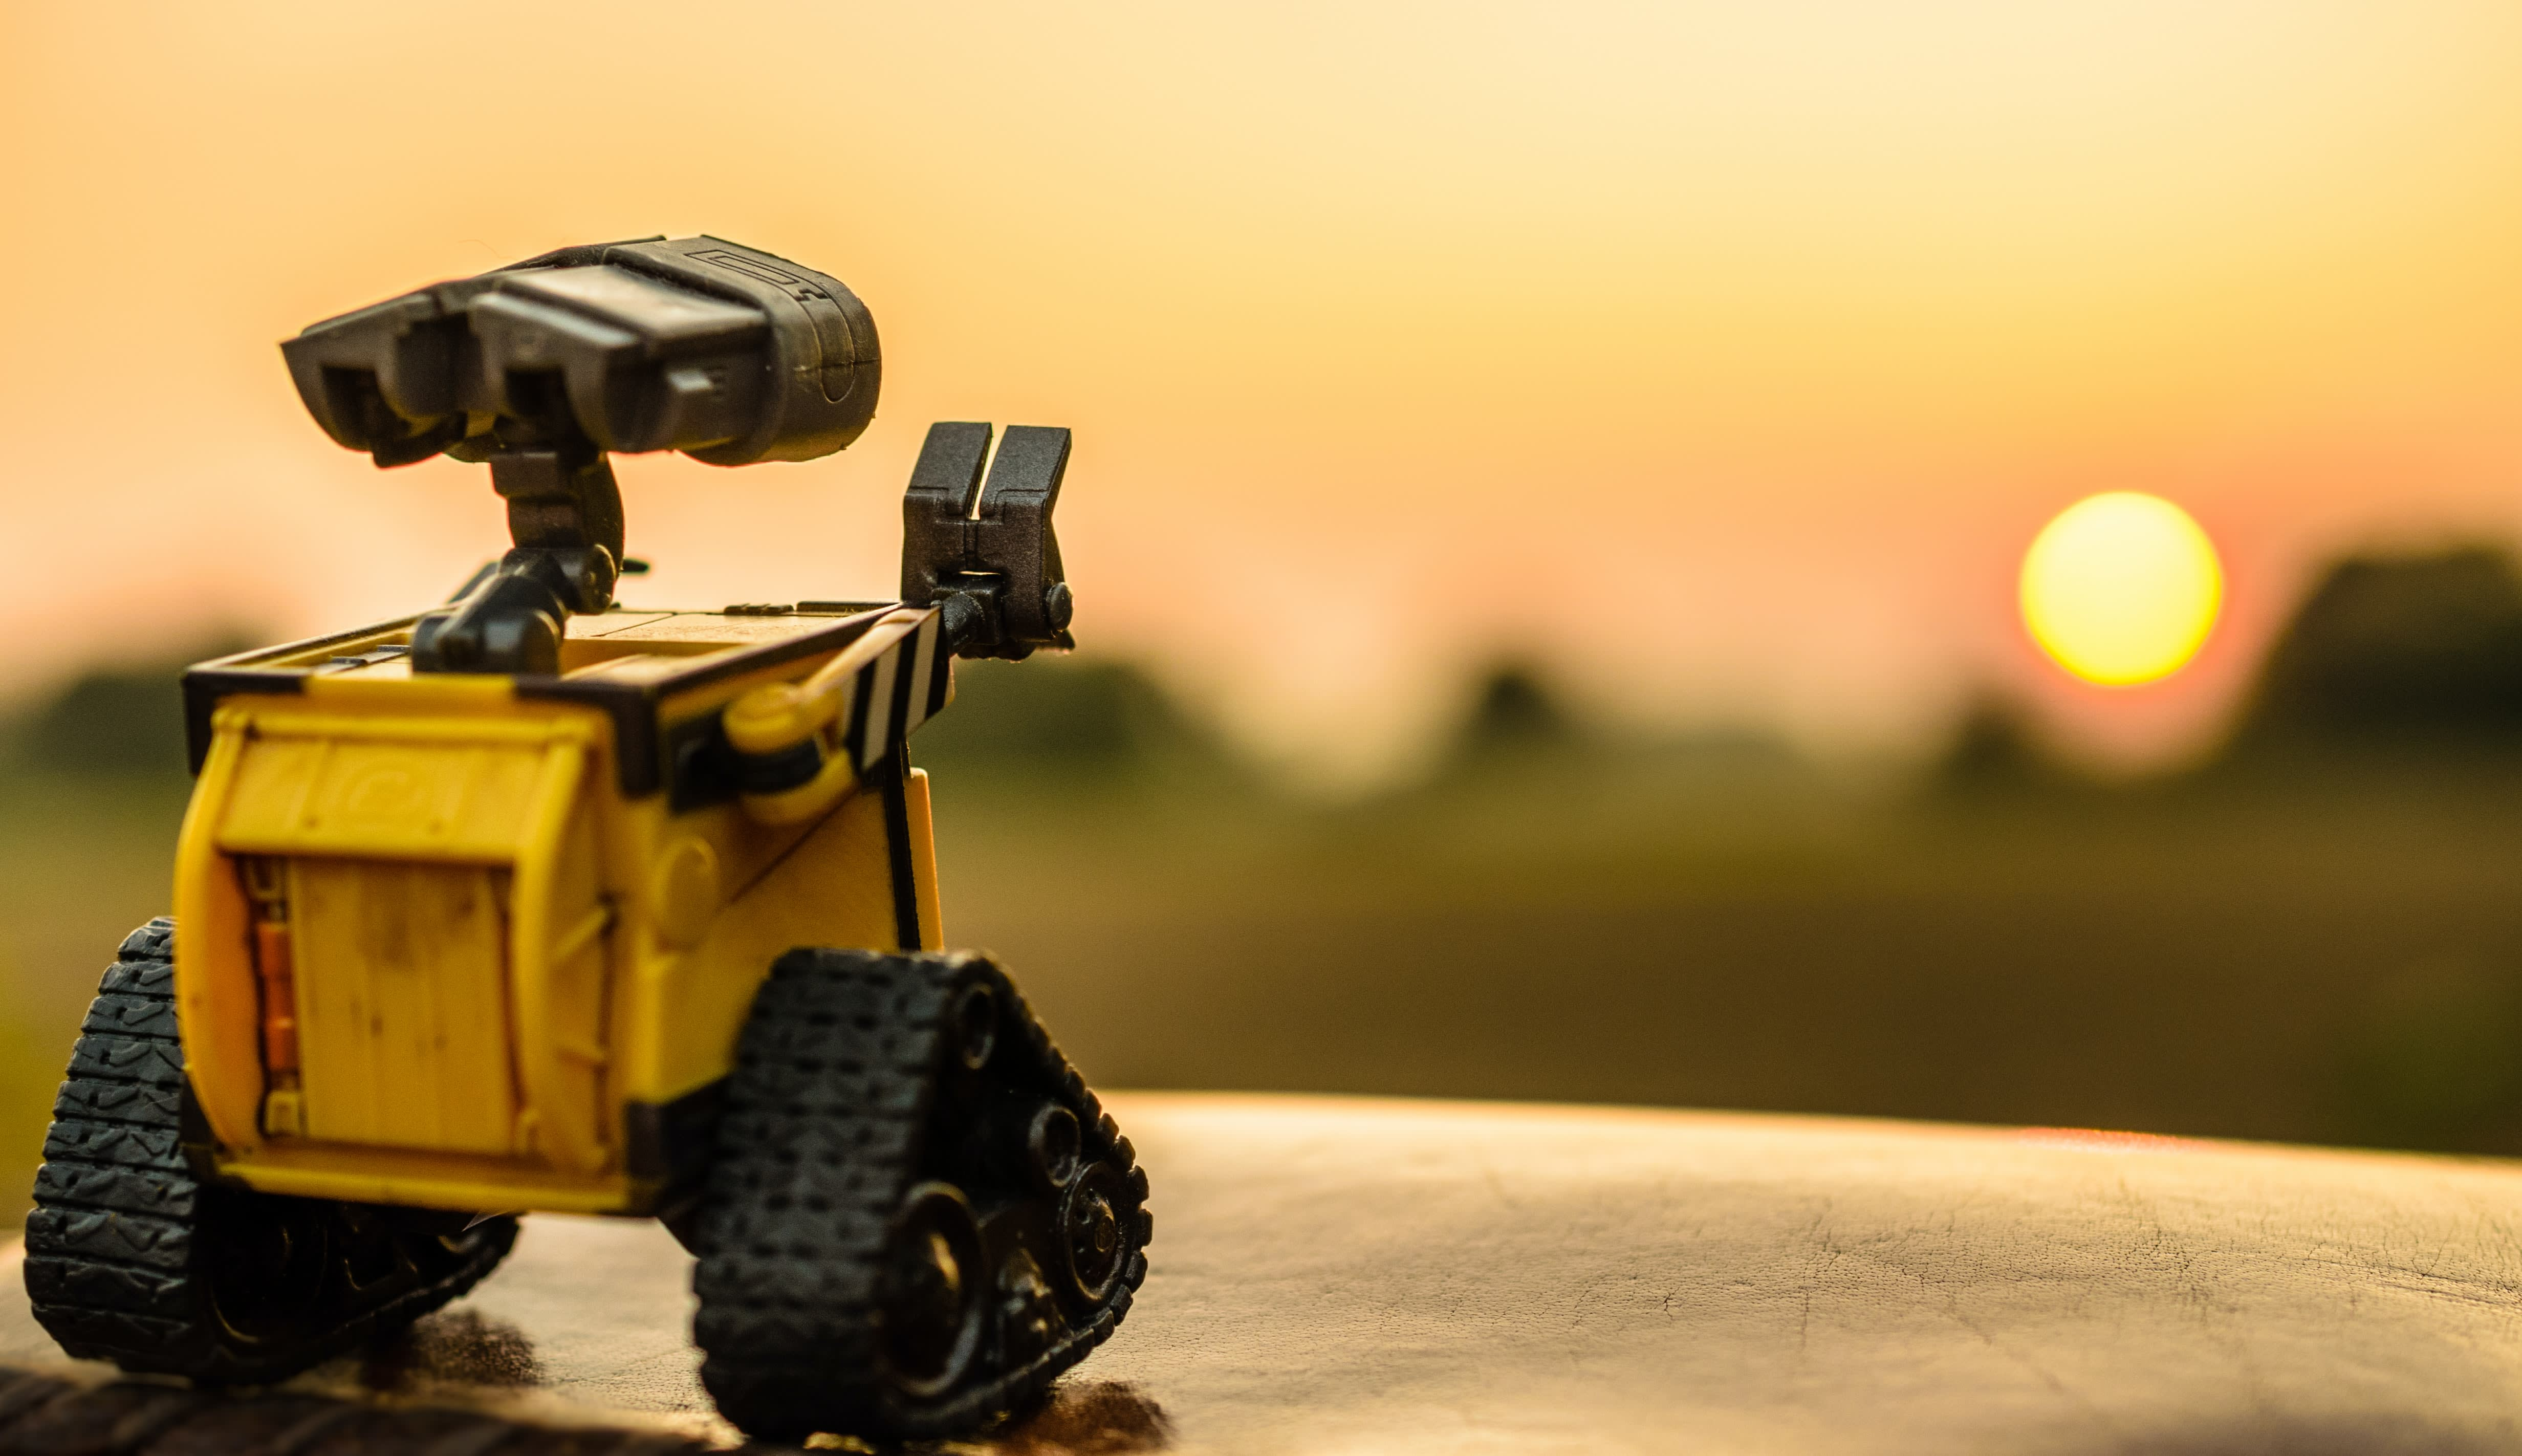 How to invest in robotics and artificial intelligence